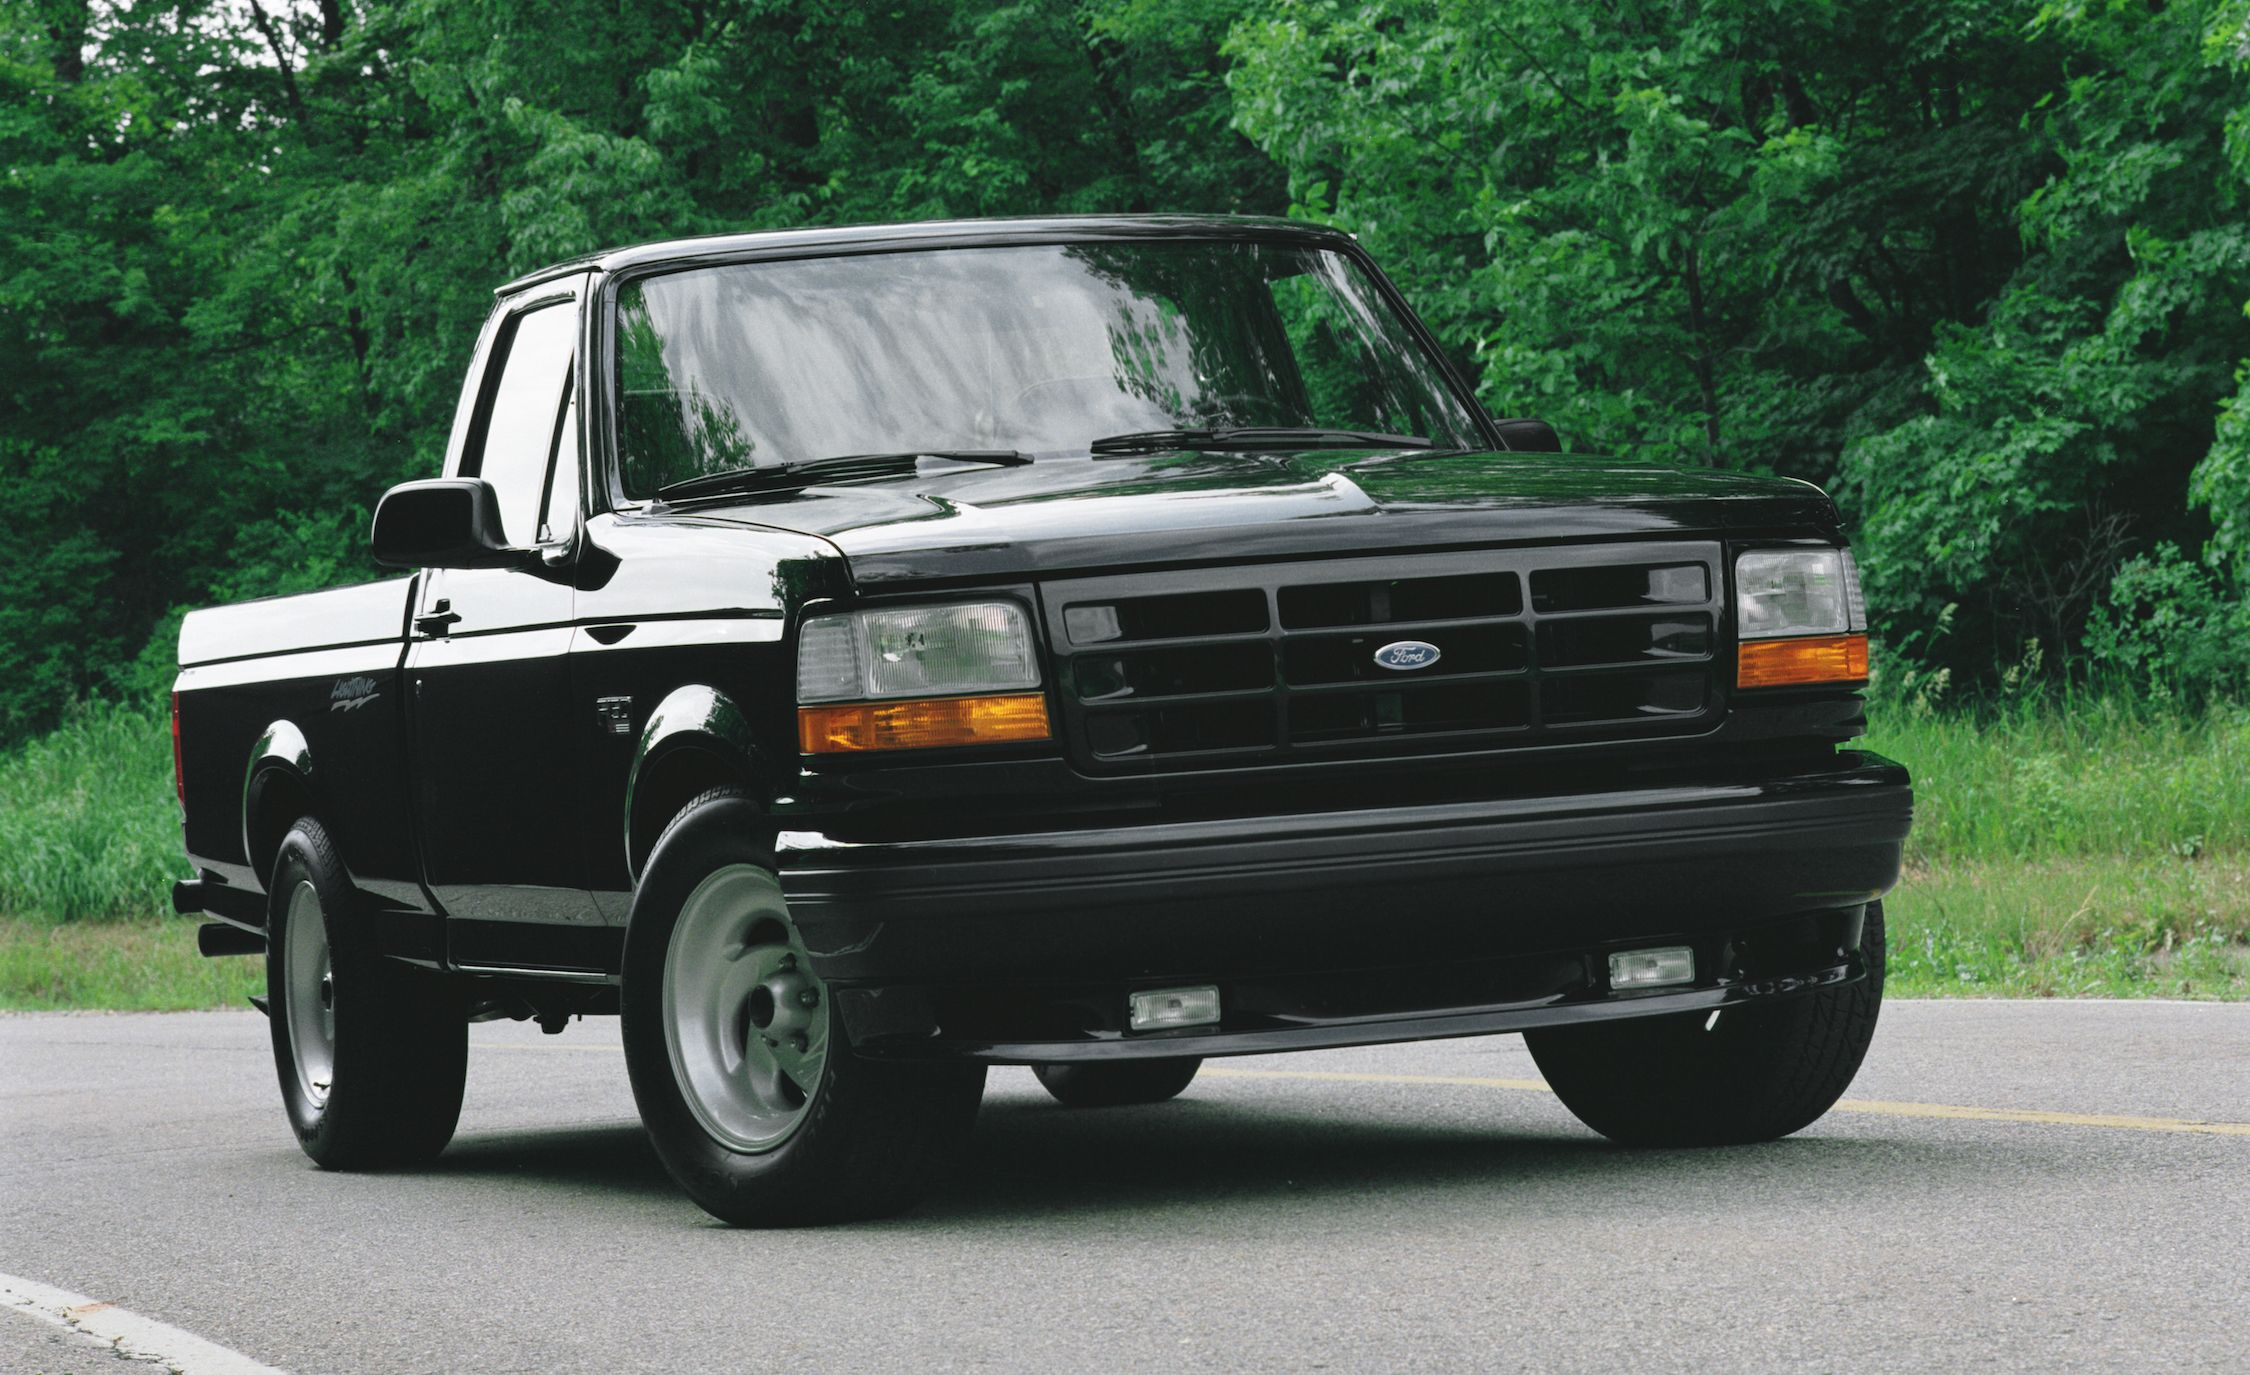 Fords F Series Pickup Truck Its History From The Model Tt To Today 1961 1968 Ford Econoline Trucks